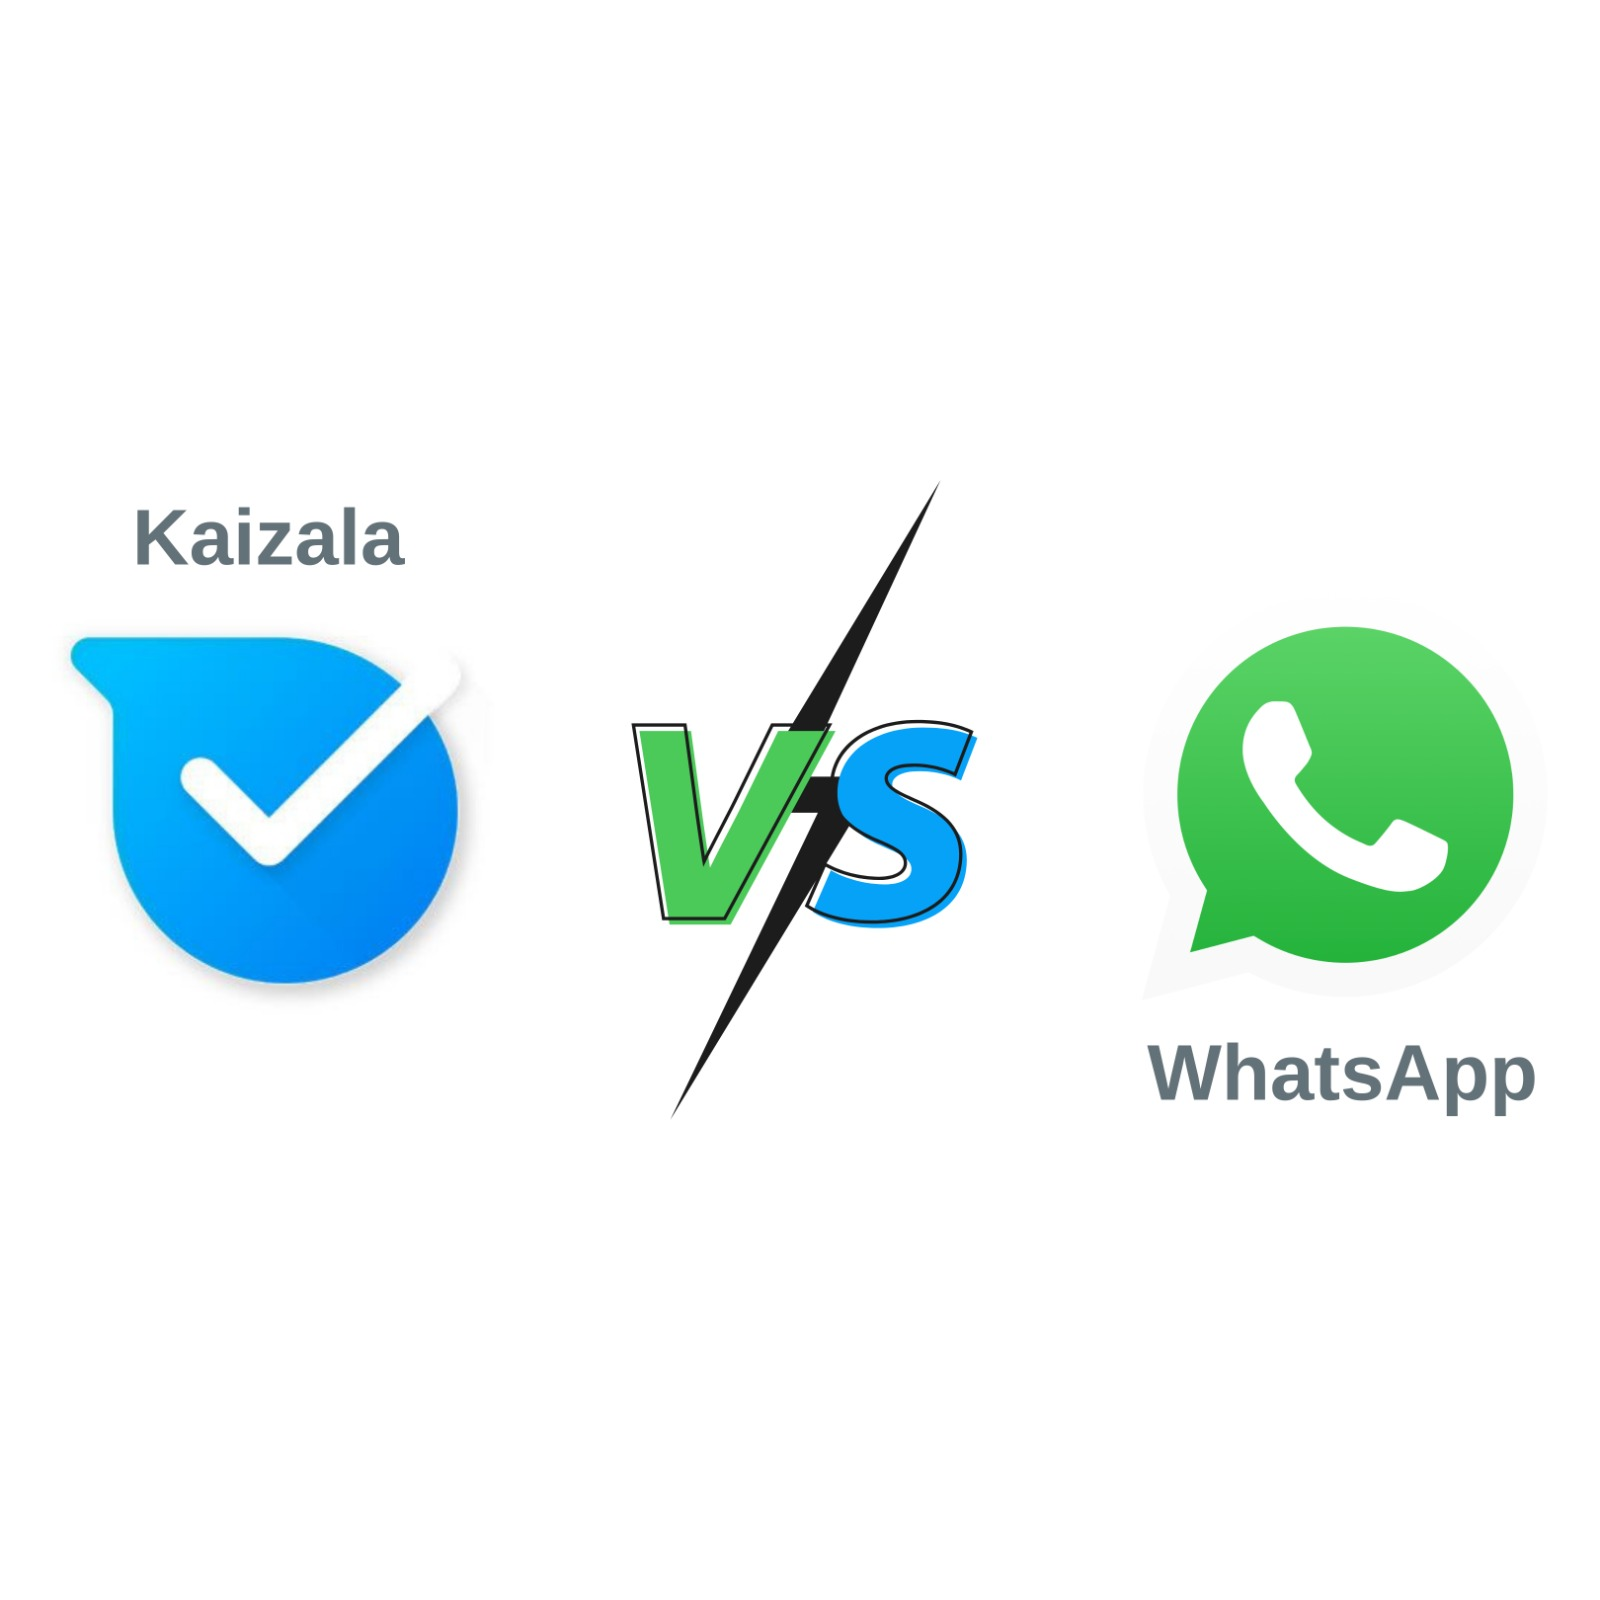 Whatsapp VS Kaizala